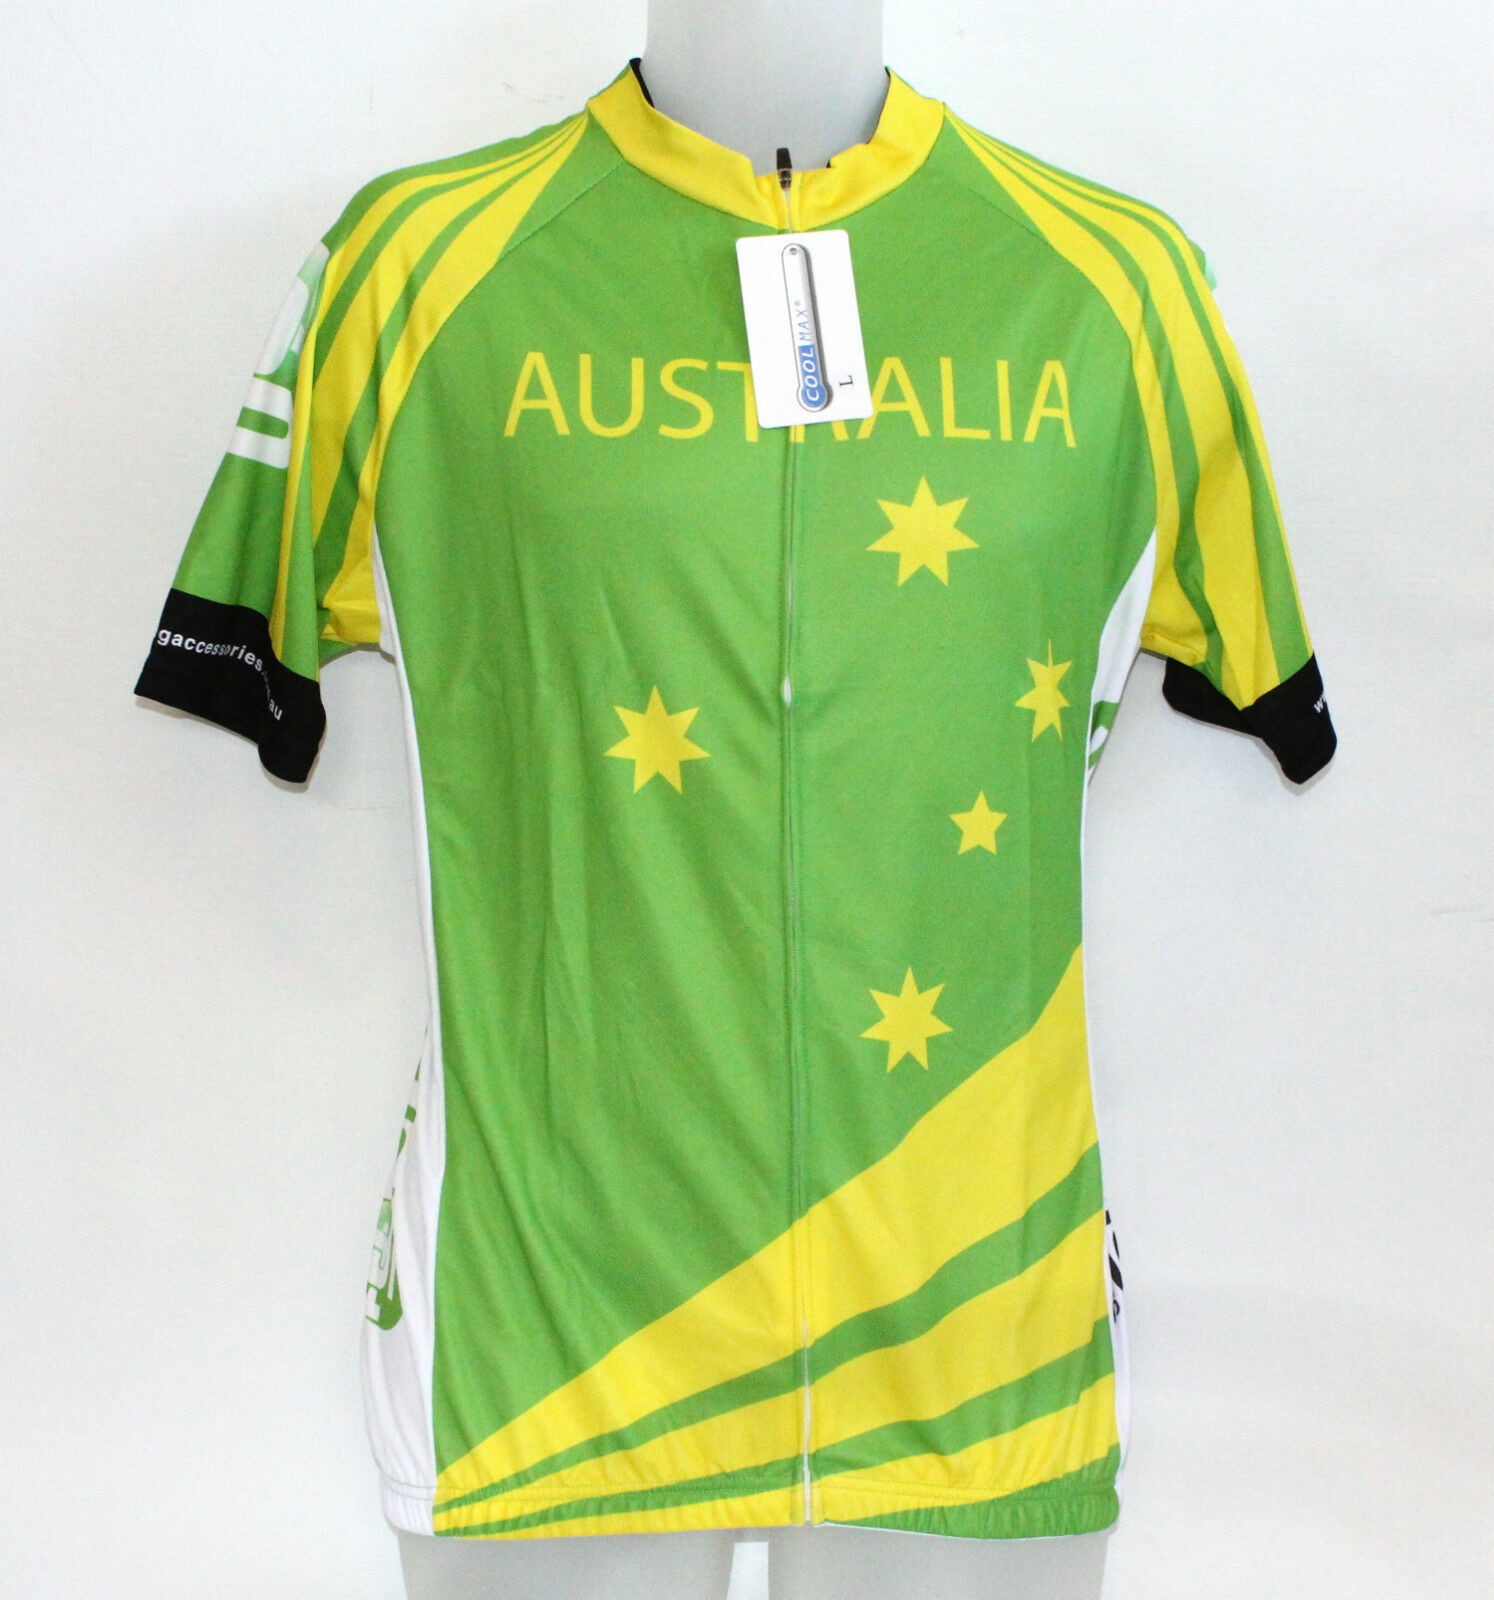 AUSTRALIAN Cycling Bike Jersey Tourist Australia Design Coolmax grand